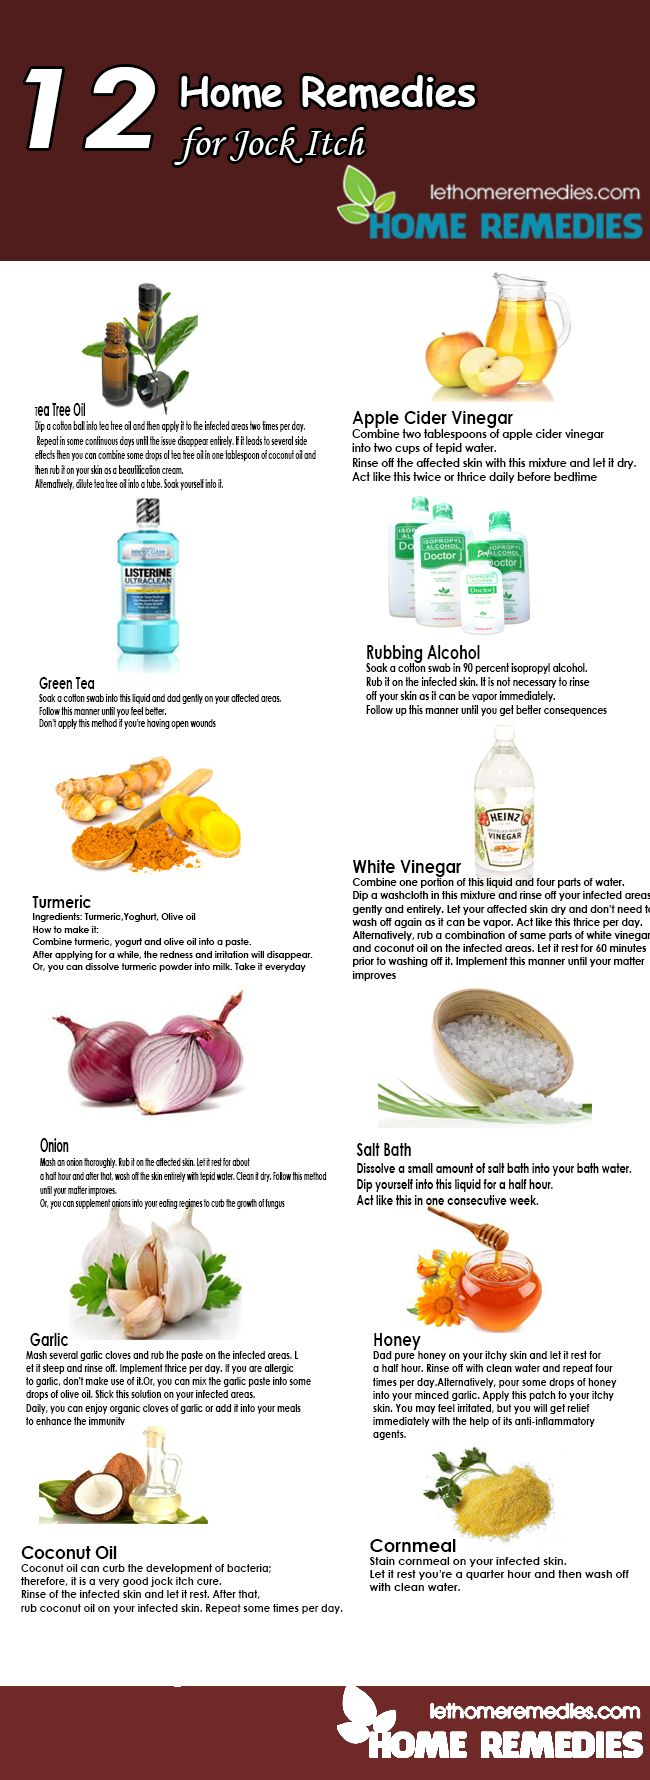 Without any intervention of doctors or chemical products, you can get rid of jock itch by following these home remedies for jock itch. Here are the top 12 home remedies for jock itch which you should implement. Try to mix some tips to say goodbye to this disease in no time.